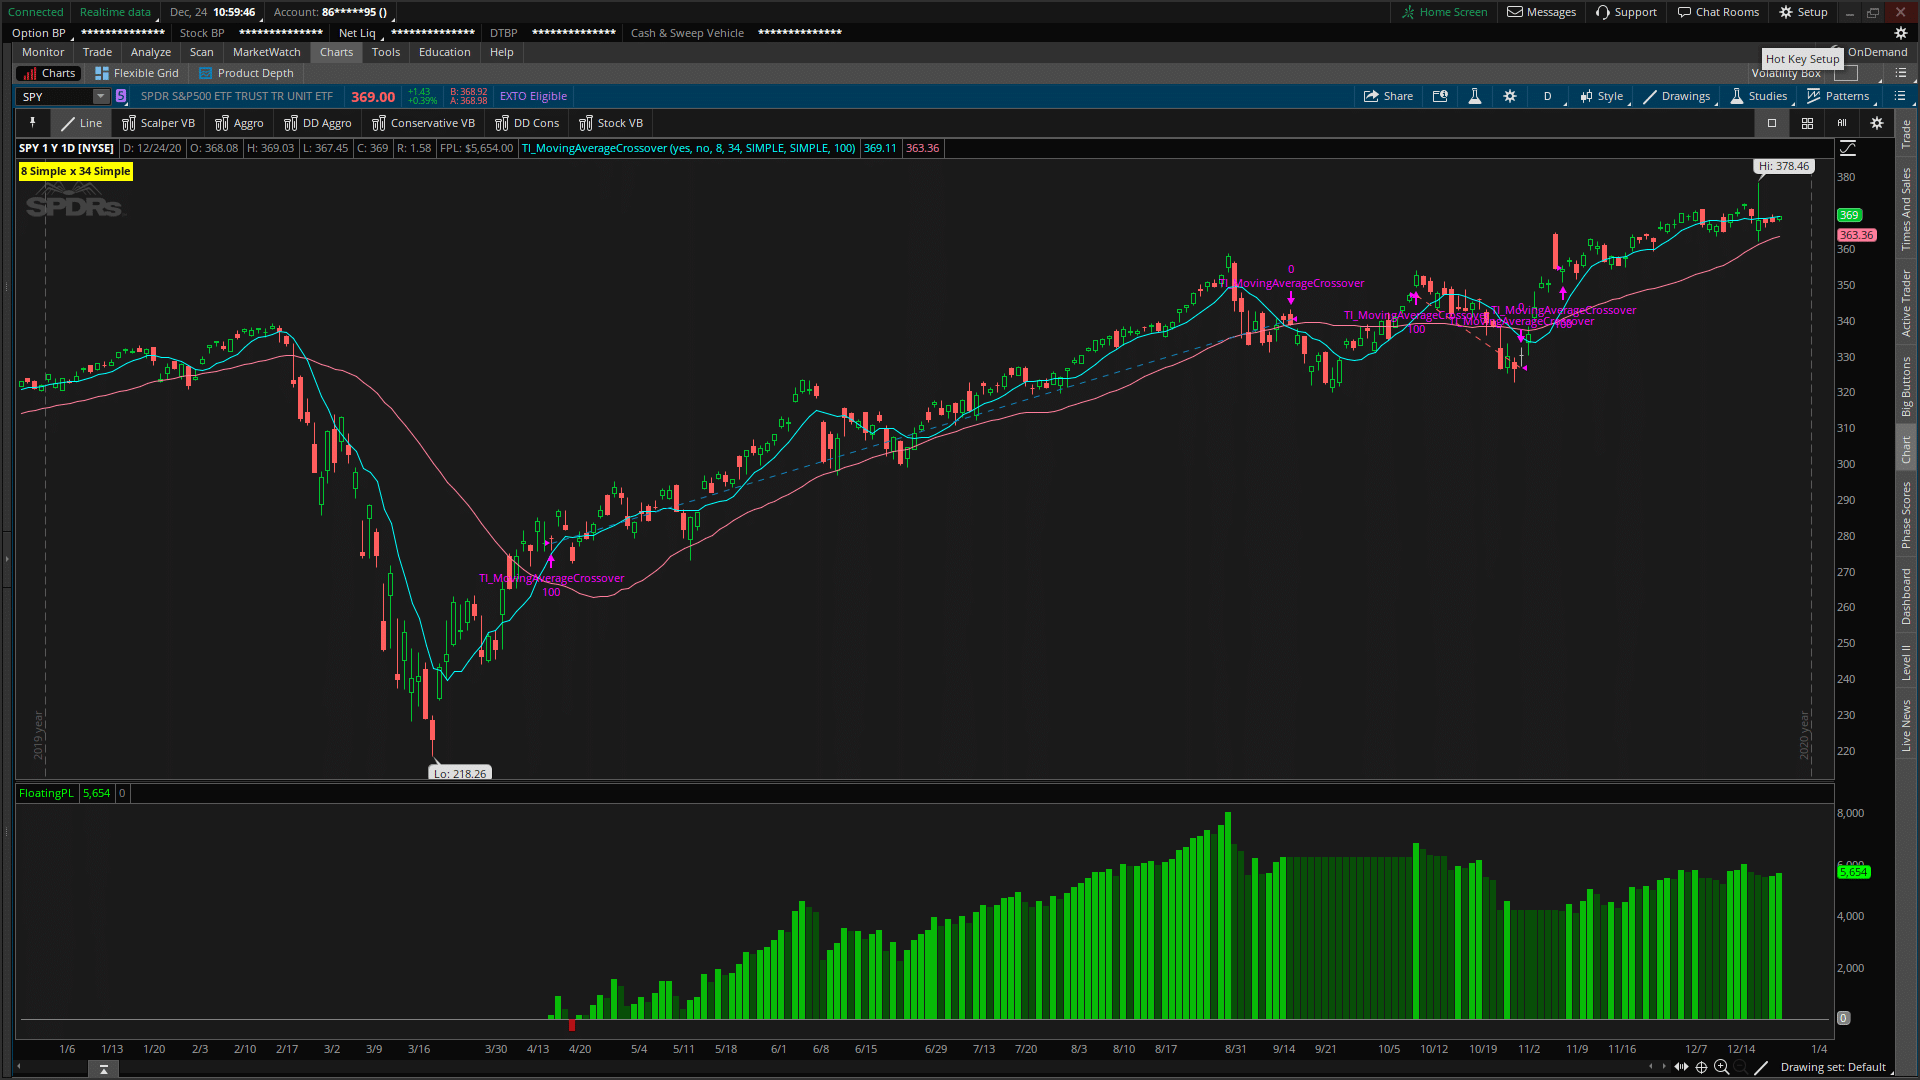 8 x 34 Simple Moving Average Crossover on SPY